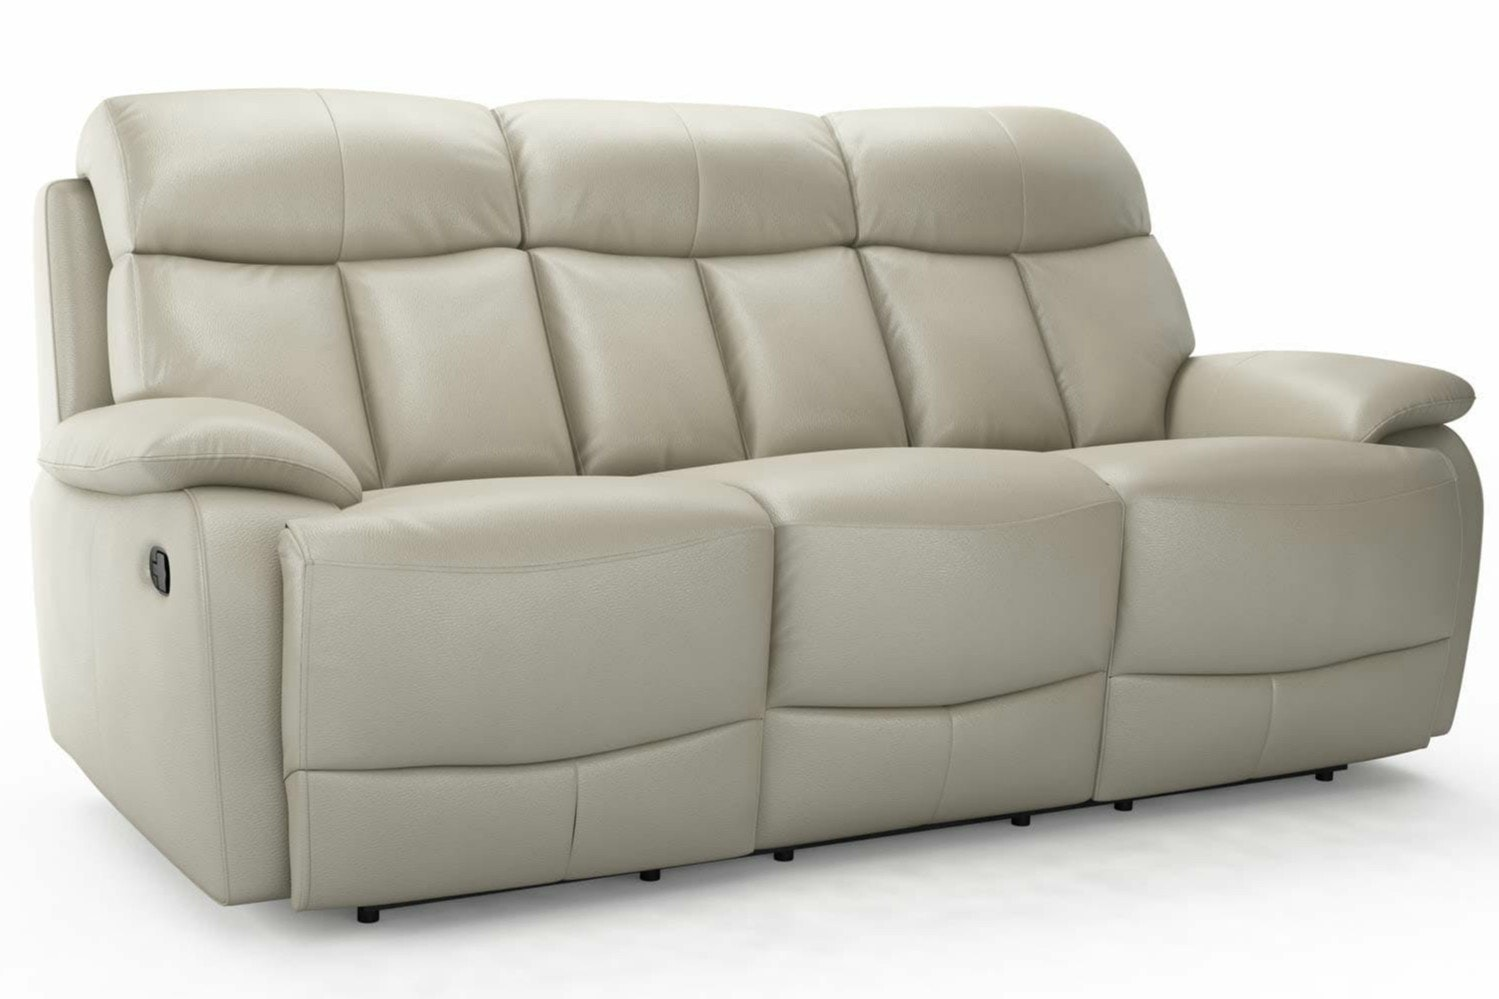 Seline 3 Seater Leather Recliner Sofa ...